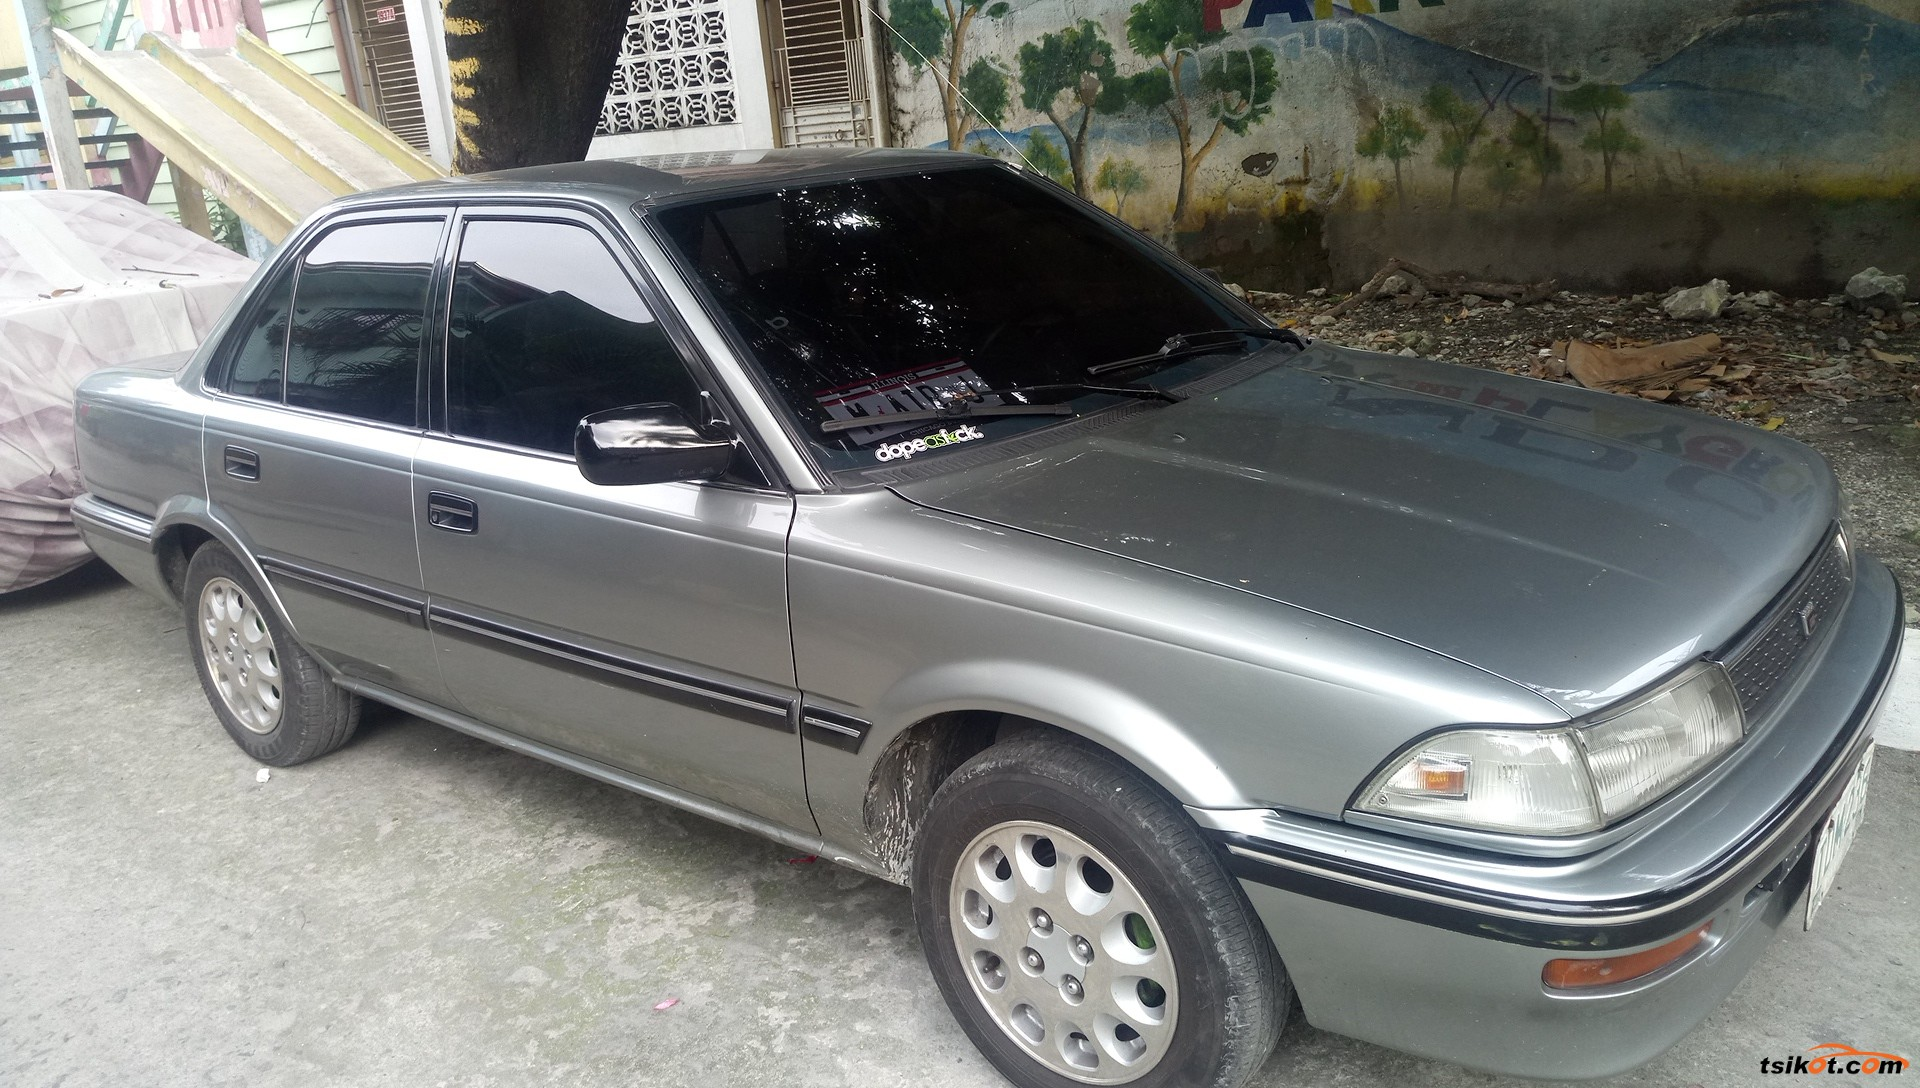 toyota corolla 1992 car for sale metro manila. Black Bedroom Furniture Sets. Home Design Ideas